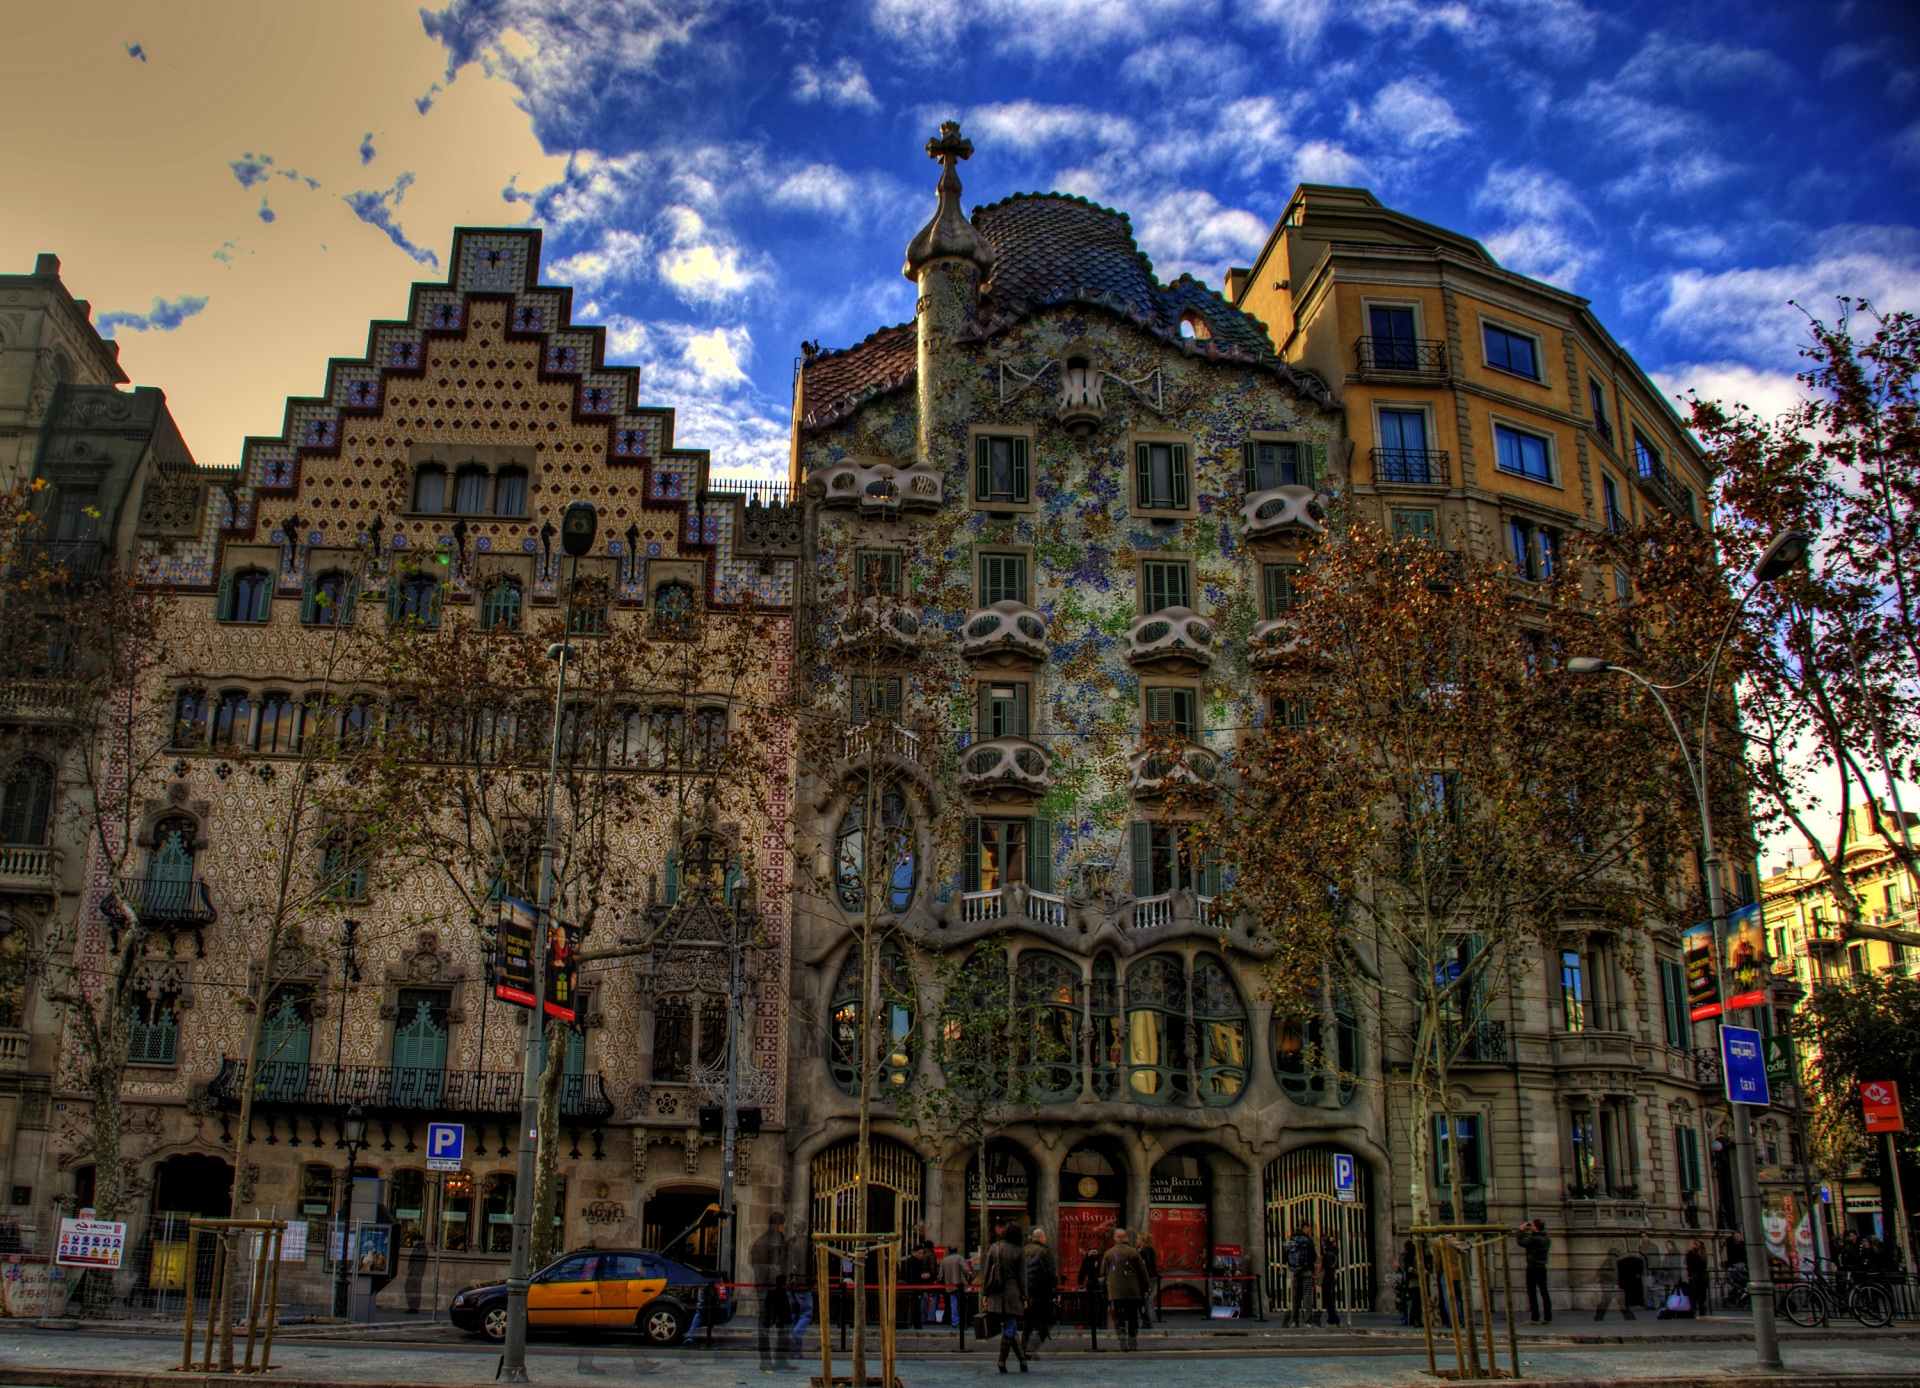 City Of Barcelona Spain Full HD Wallpaper And Background Image